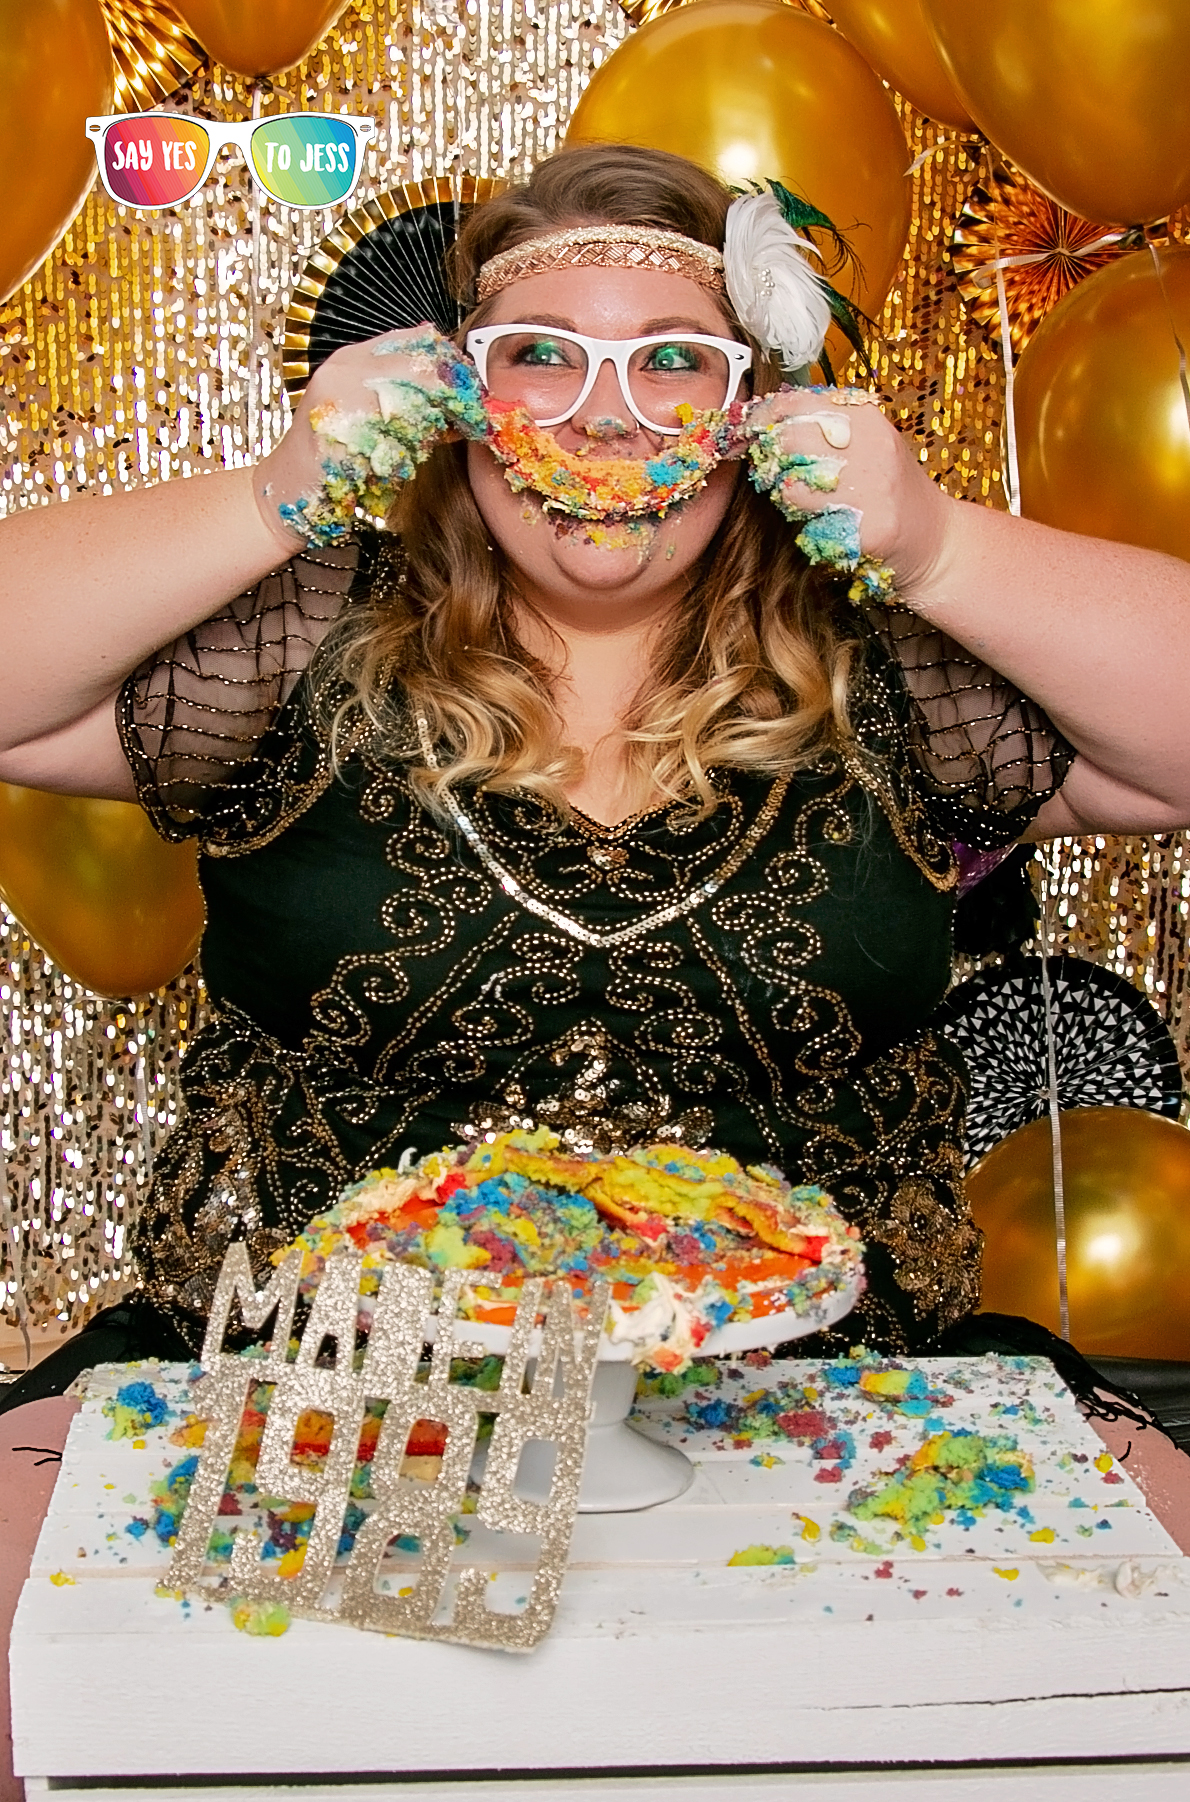 Cincinnati Ohio Adult Cake Smash happy 30th Birthday.jpg